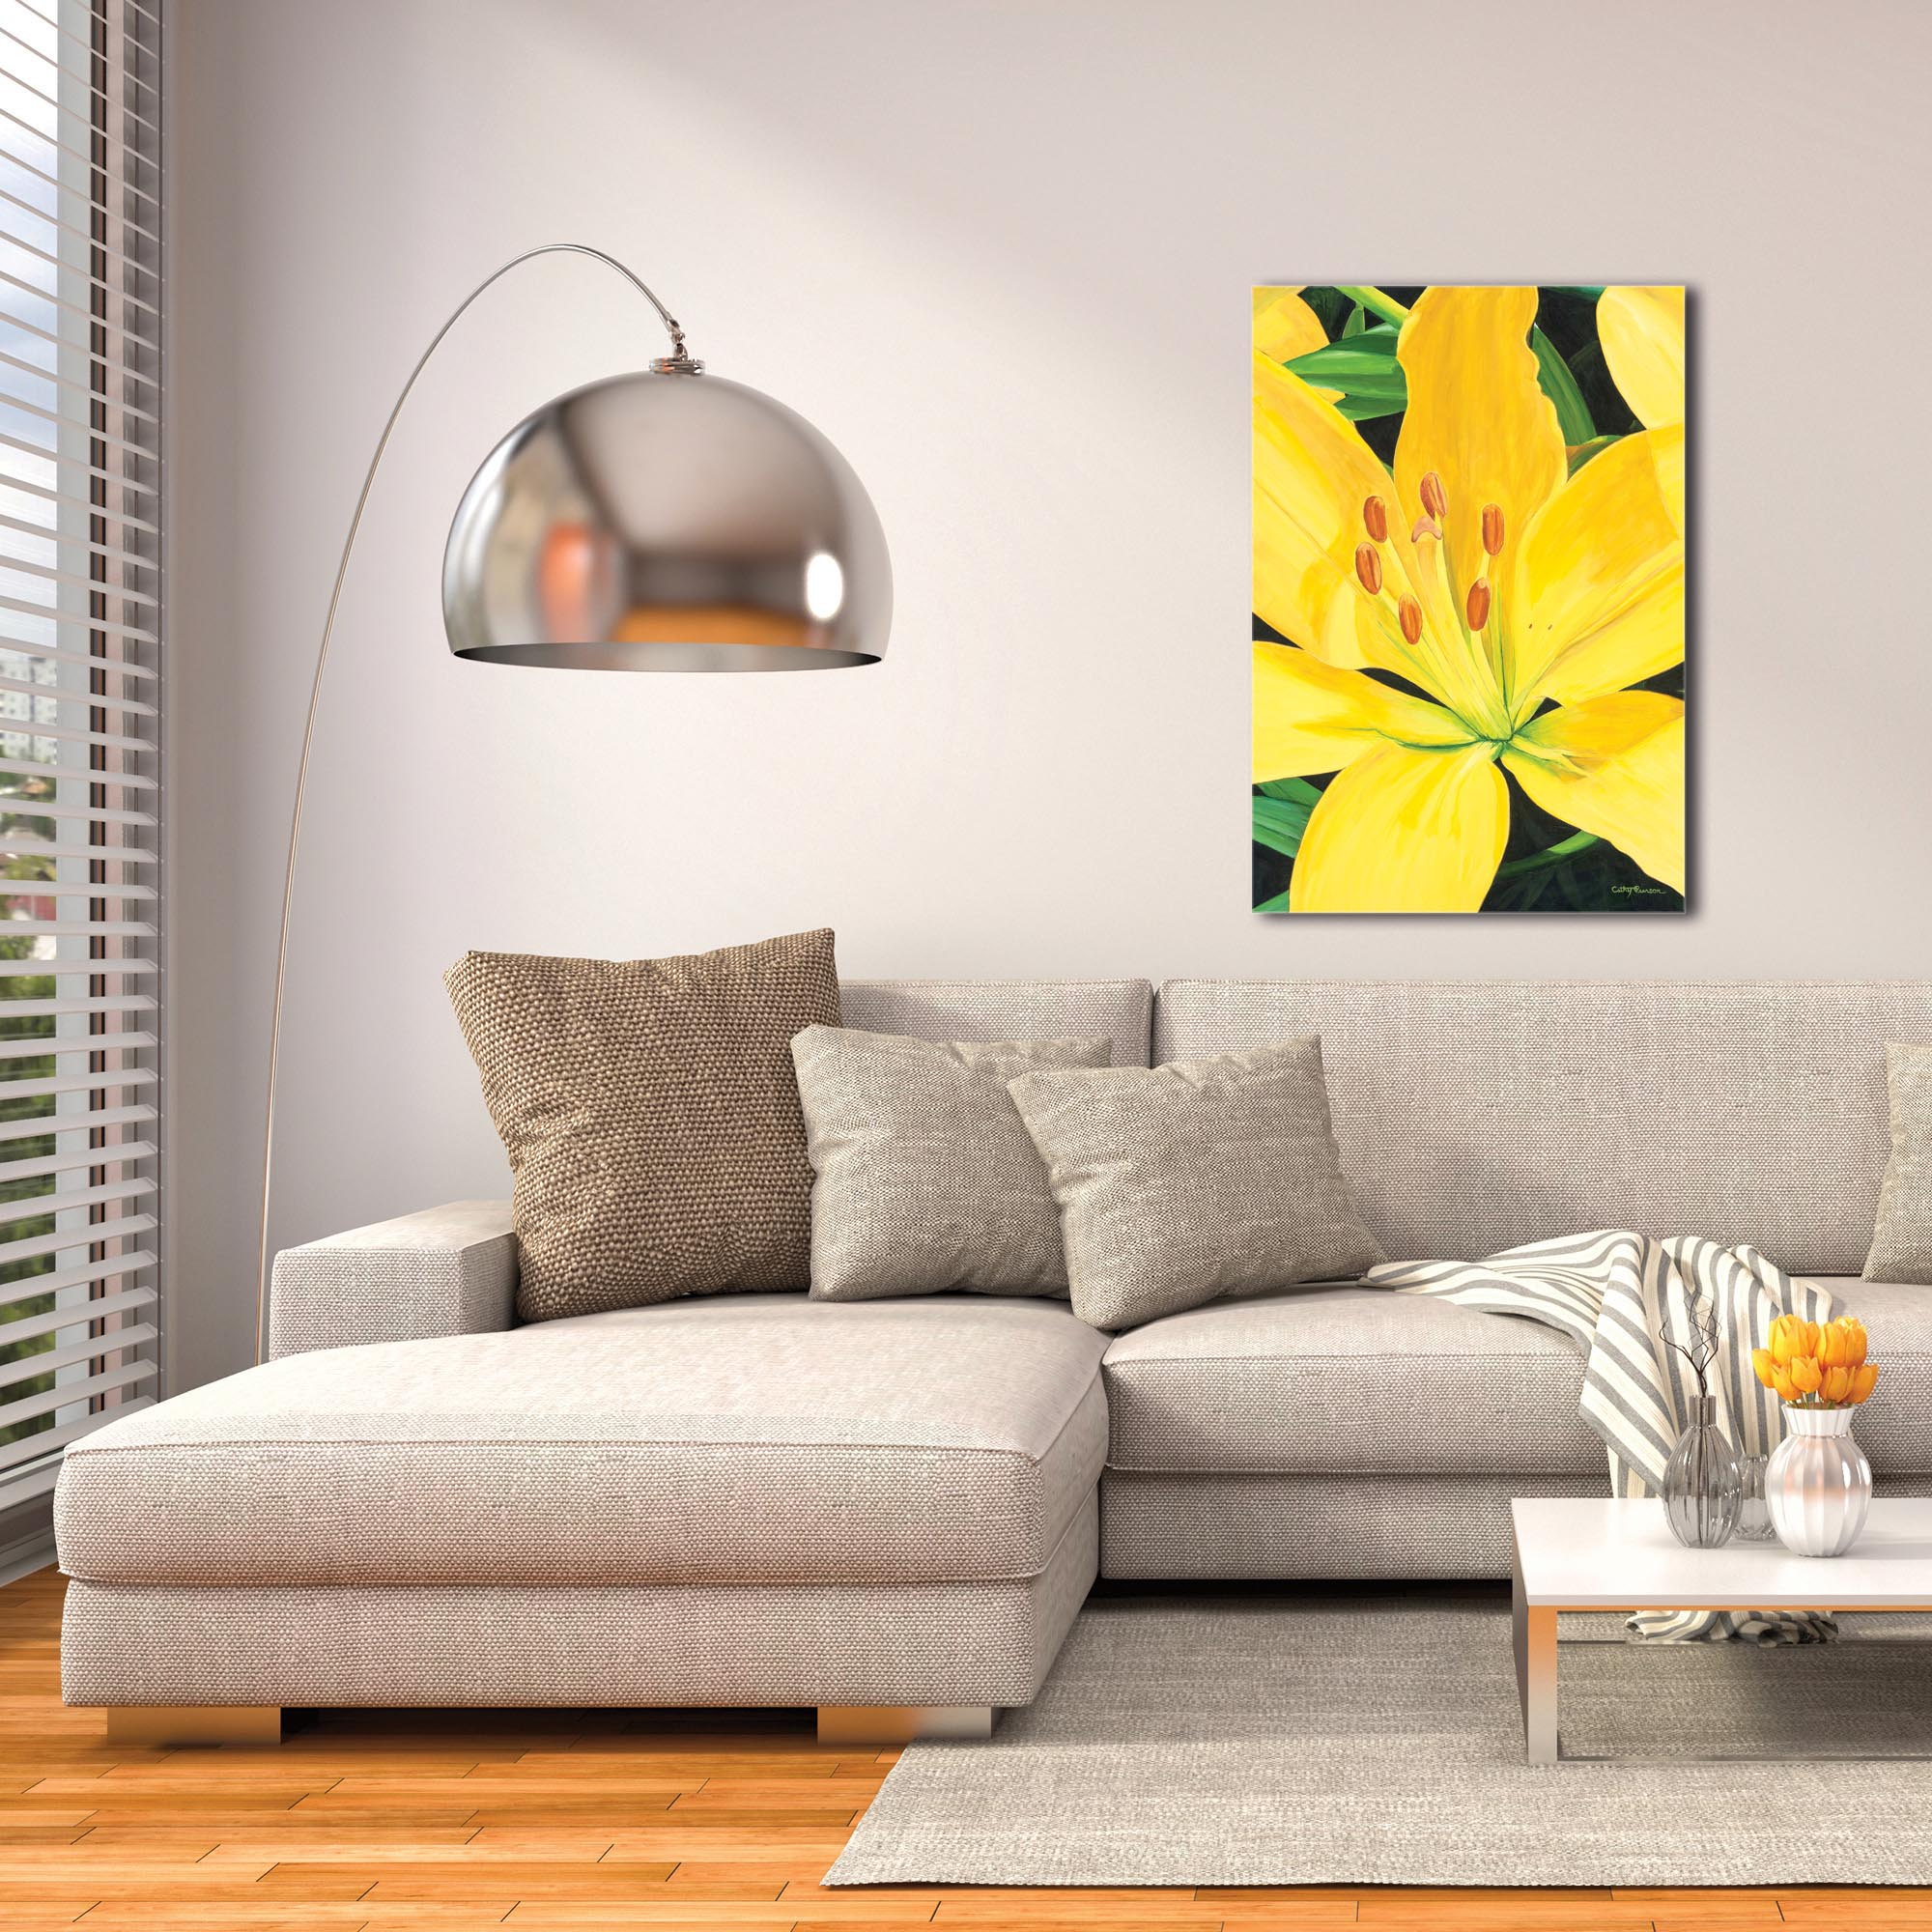 Traditional Wall Art 'Heart of a Yellow Lily' - Floral Decor on Metal or Plexiglass - Image 3